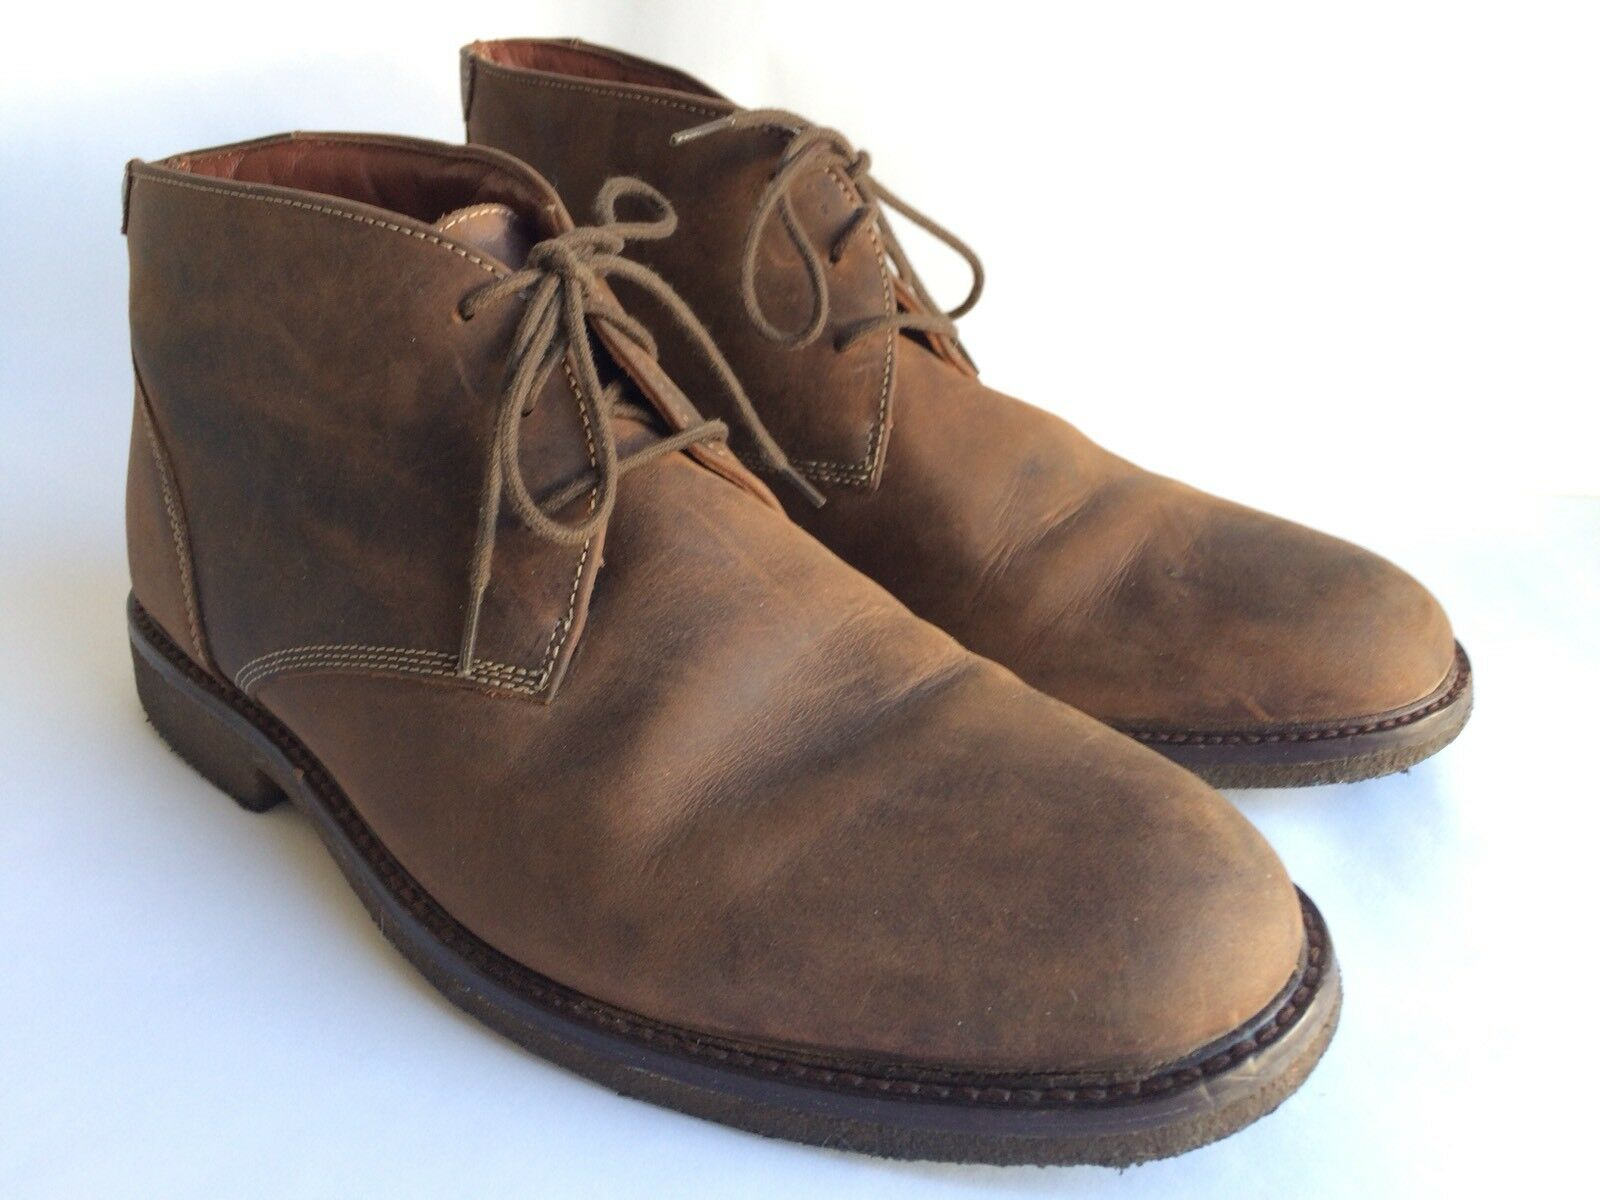 Johnston And Murphy Copeland Leather Chukka Ankle Boots Size 10.5 M 25-1870